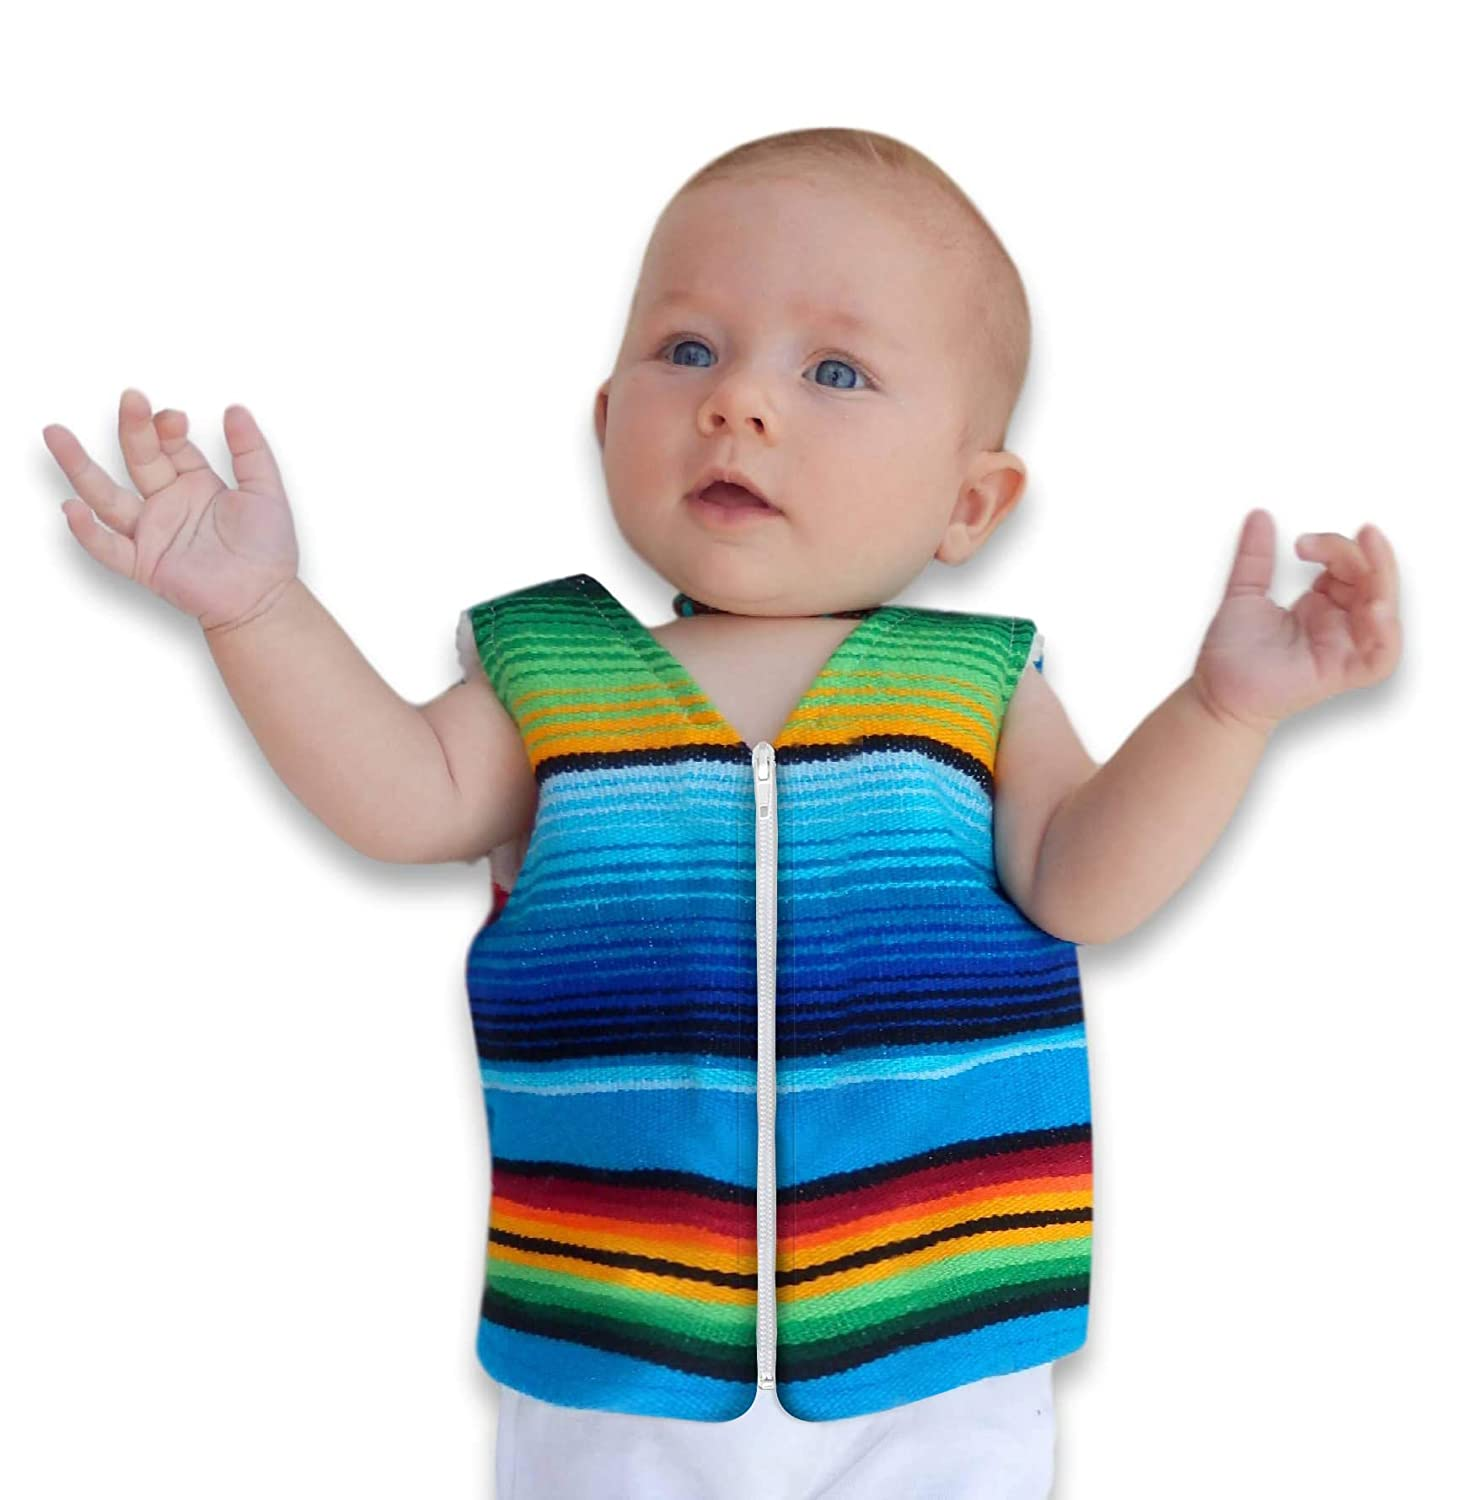 Amazon com handmade baby vest from mexican serape blanket baby shower gifts for boy or girl newborn baby clothes 1 year blue clothing